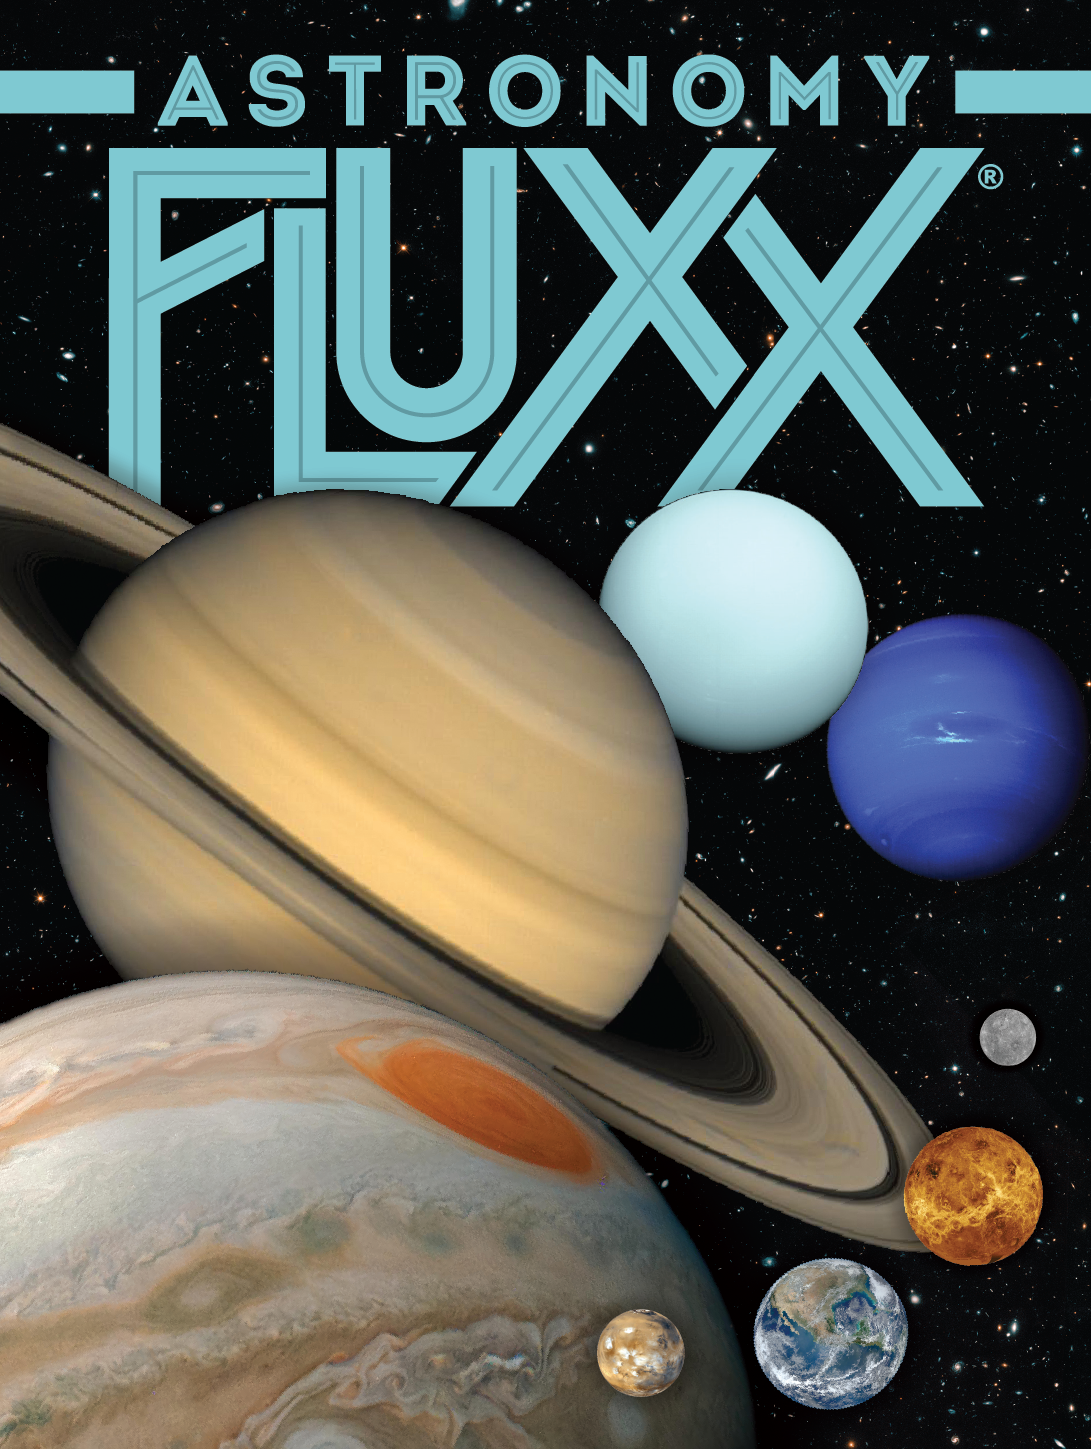 Astronomy Fluxx flat cover